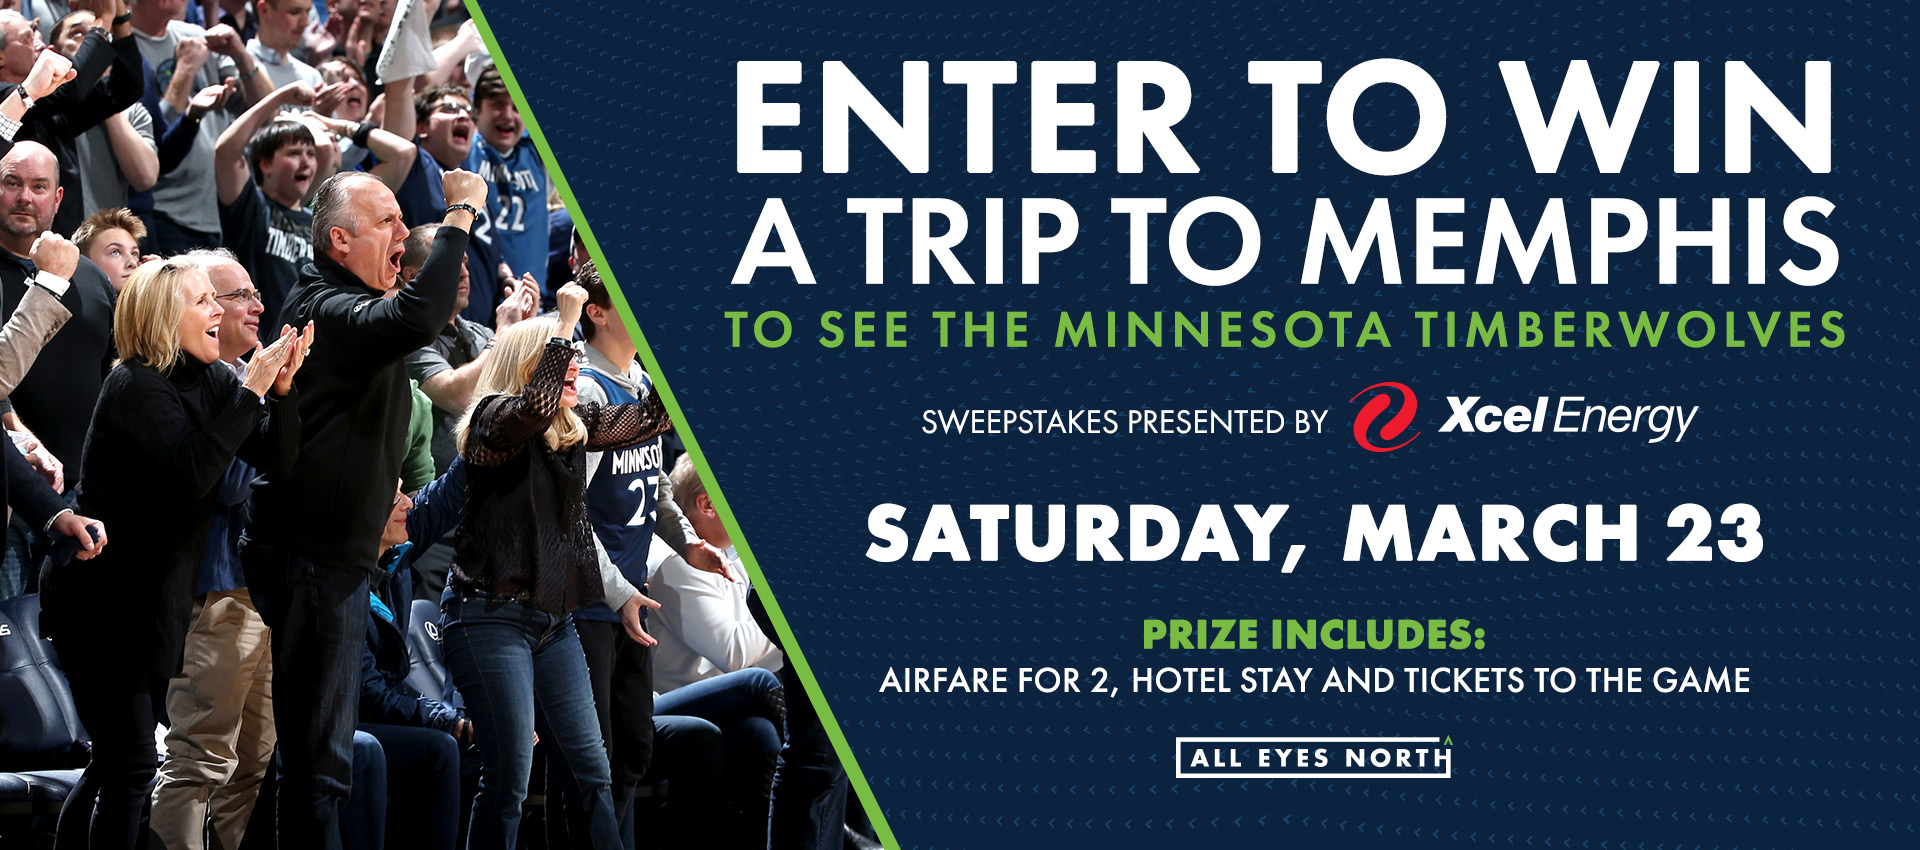 c000c7e3bc9 Enter To Win A Trip To Memphis Courtesy of Xcel Energy